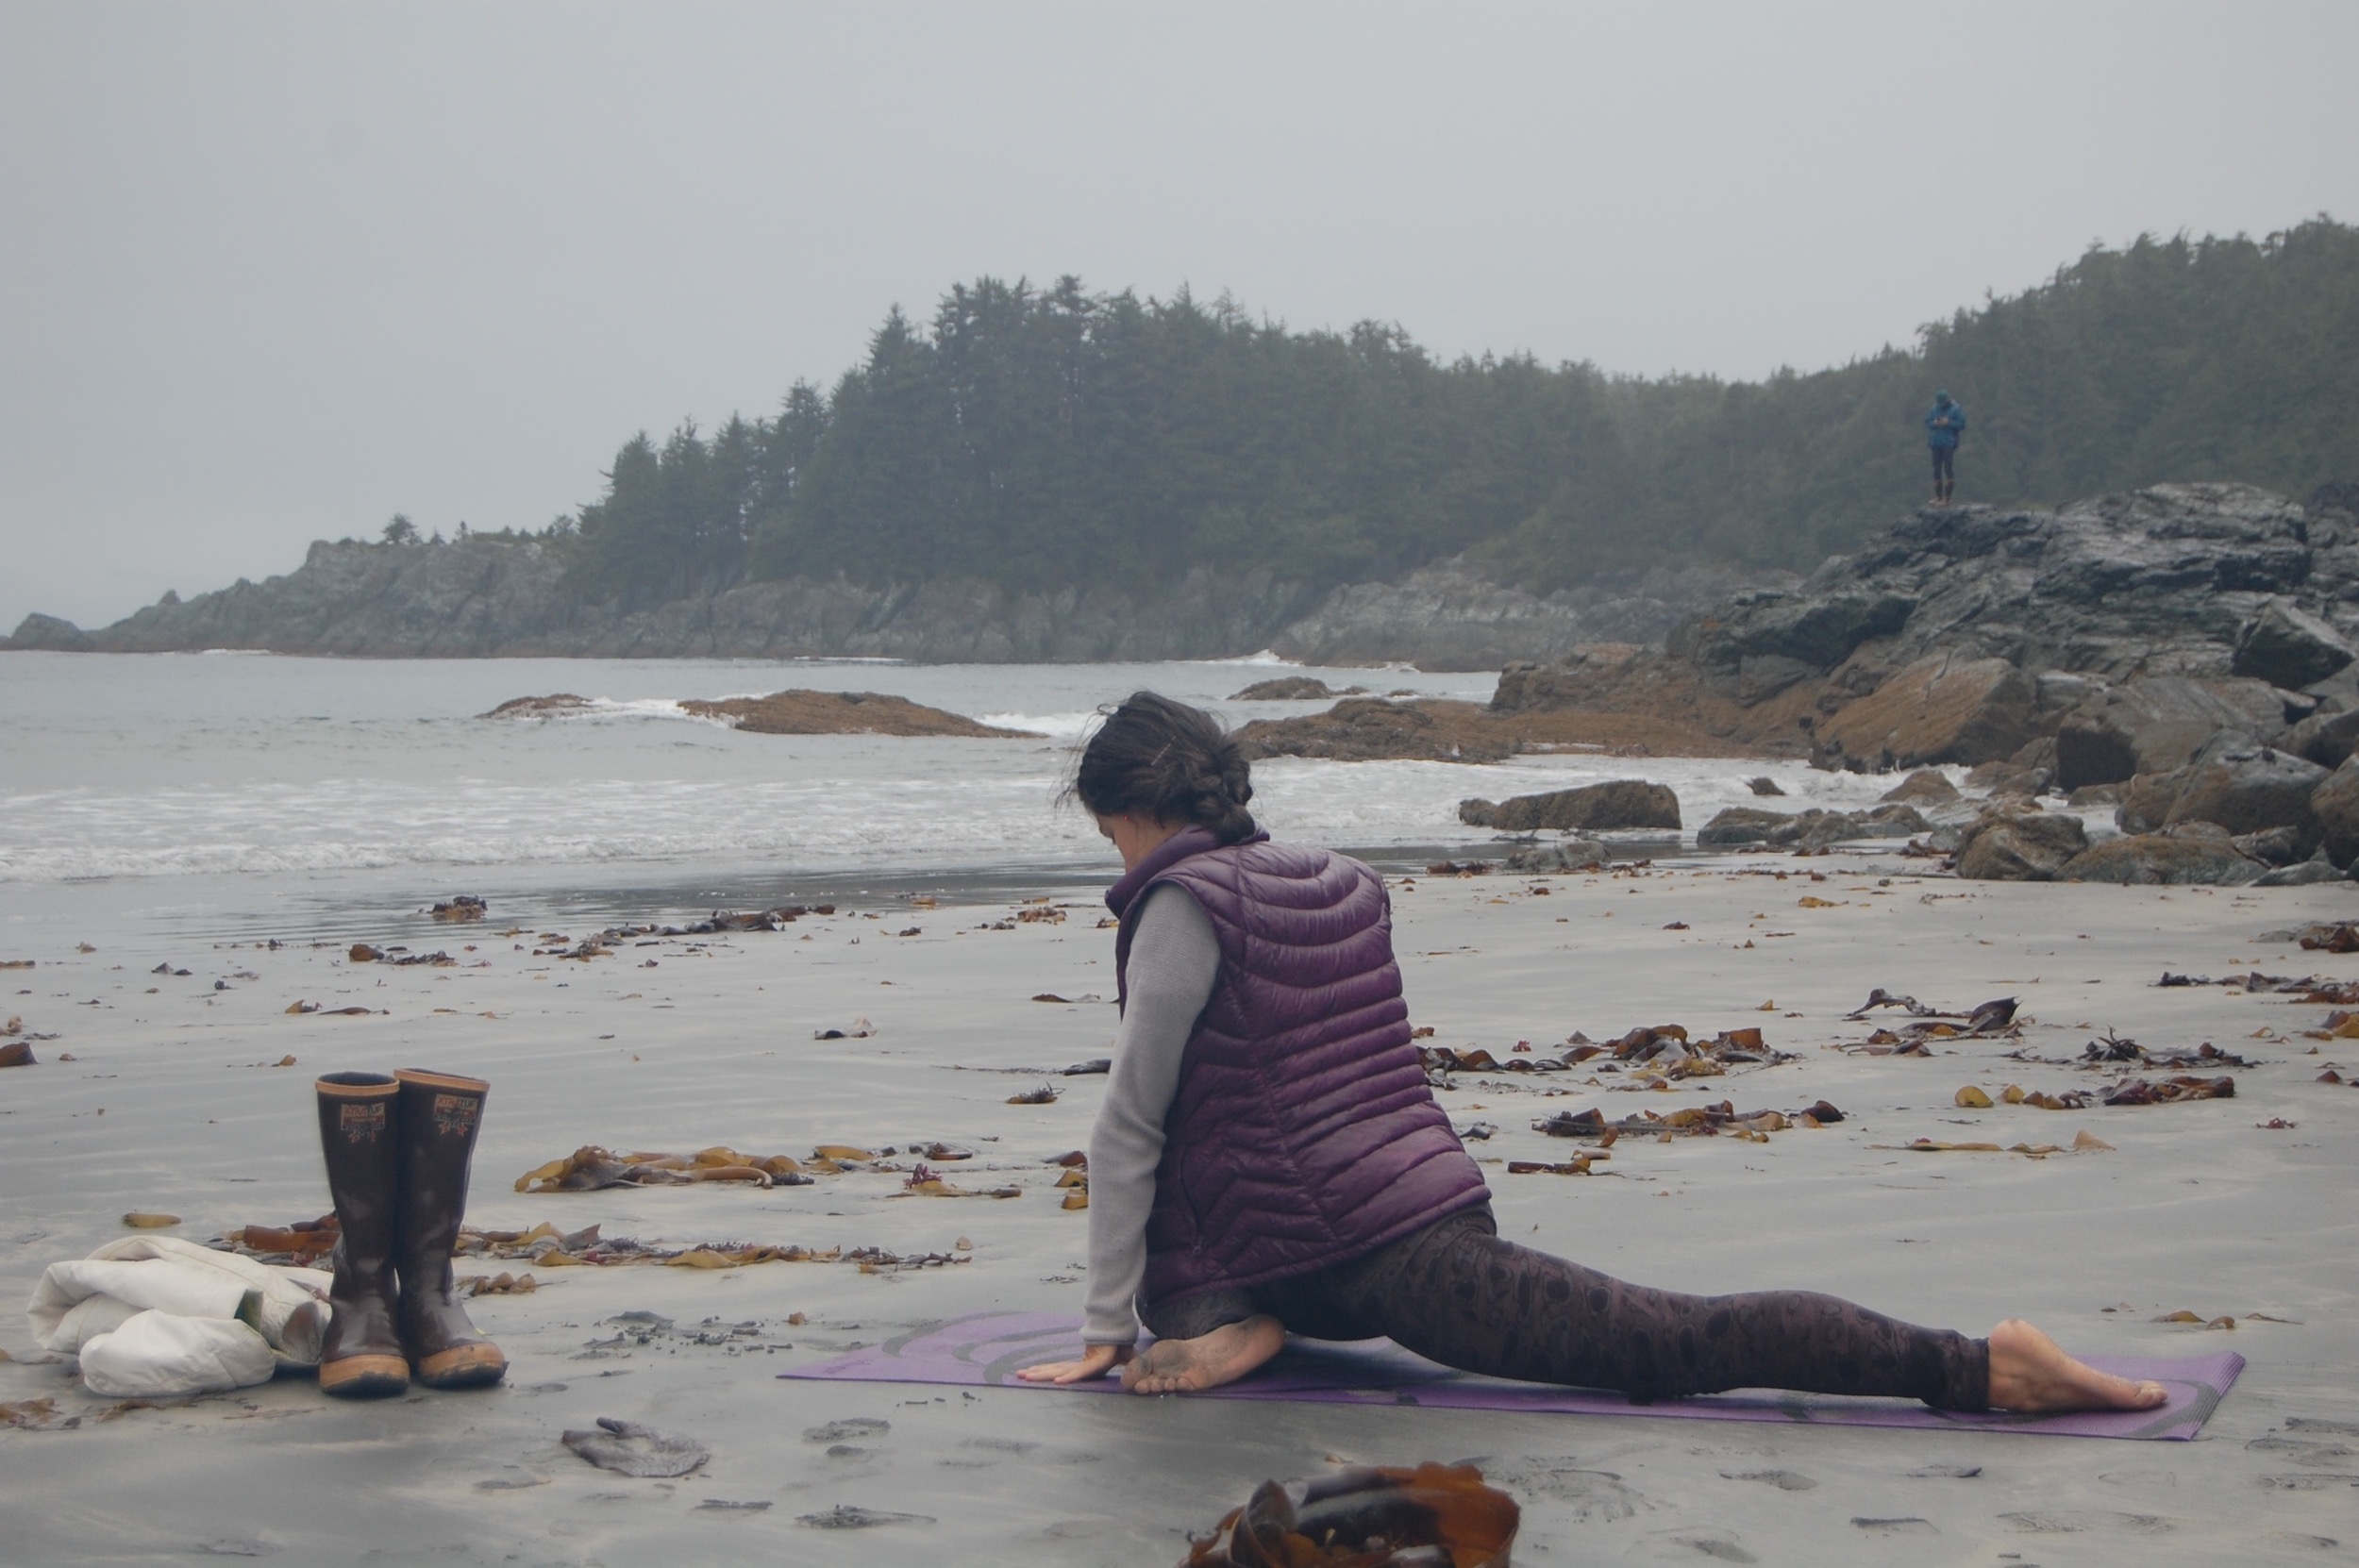 Yoga after an invigorating hike through the Tongass National Rainforest.